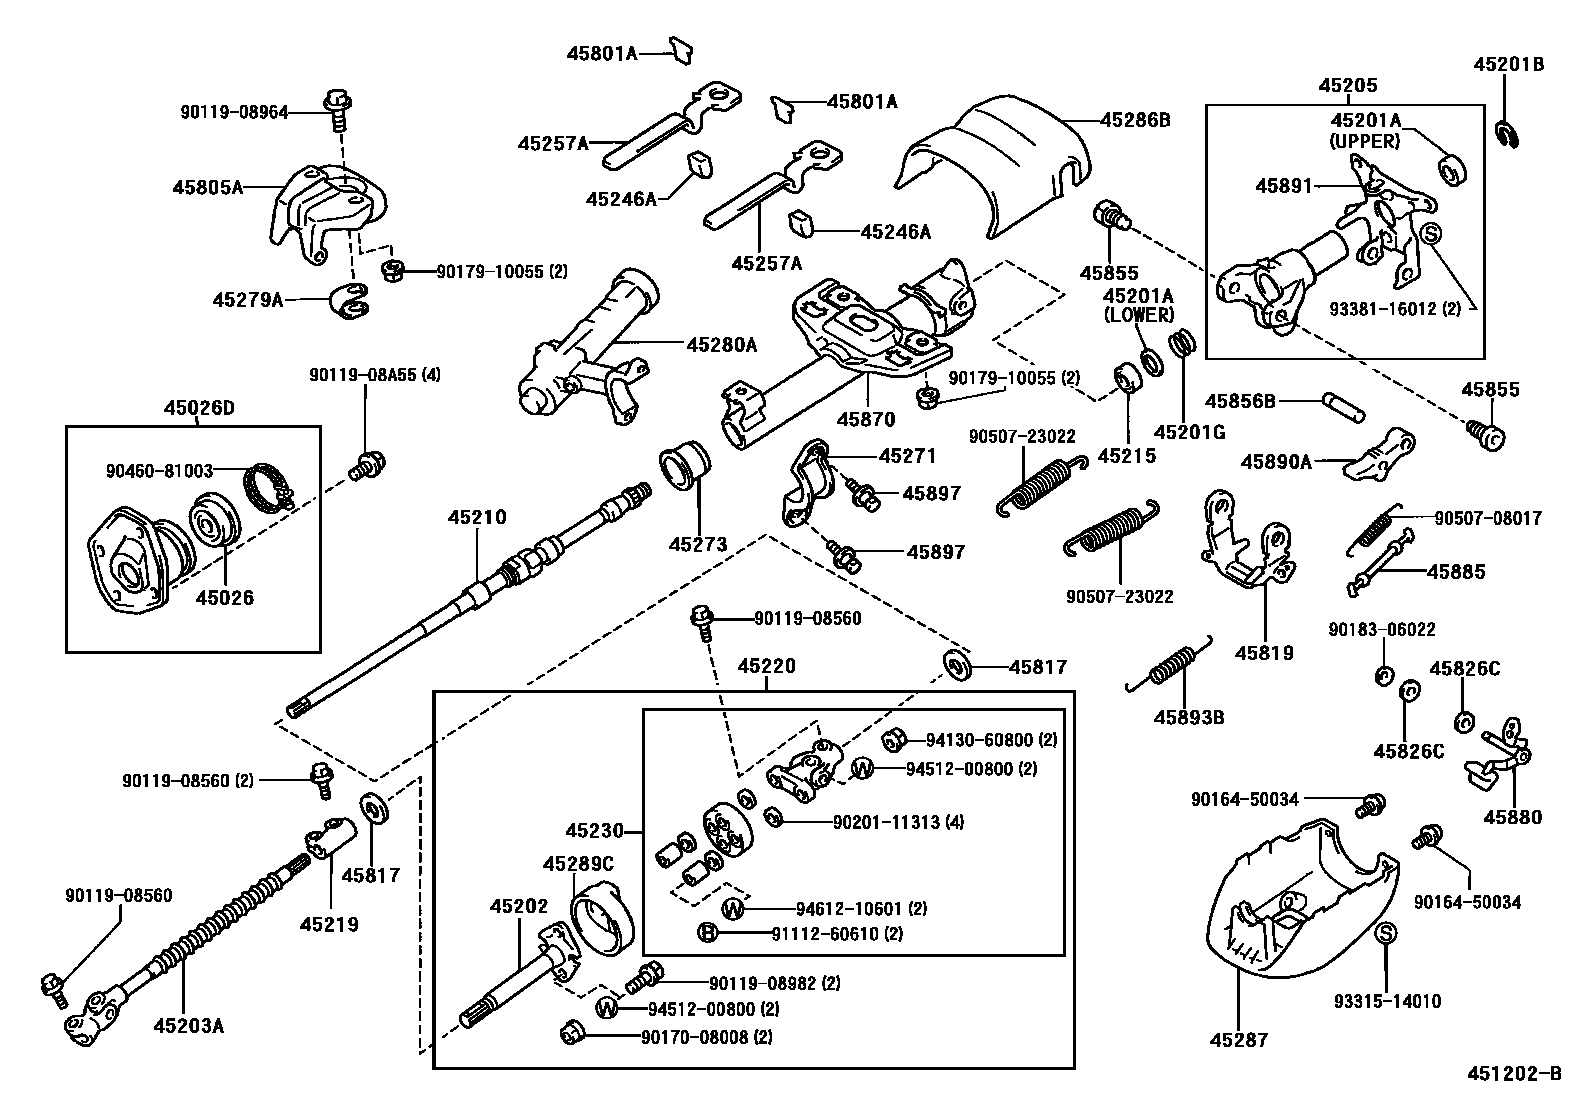 1982 Jeep Cj7 Wiring Diagram : 28 Wiring Diagram Images